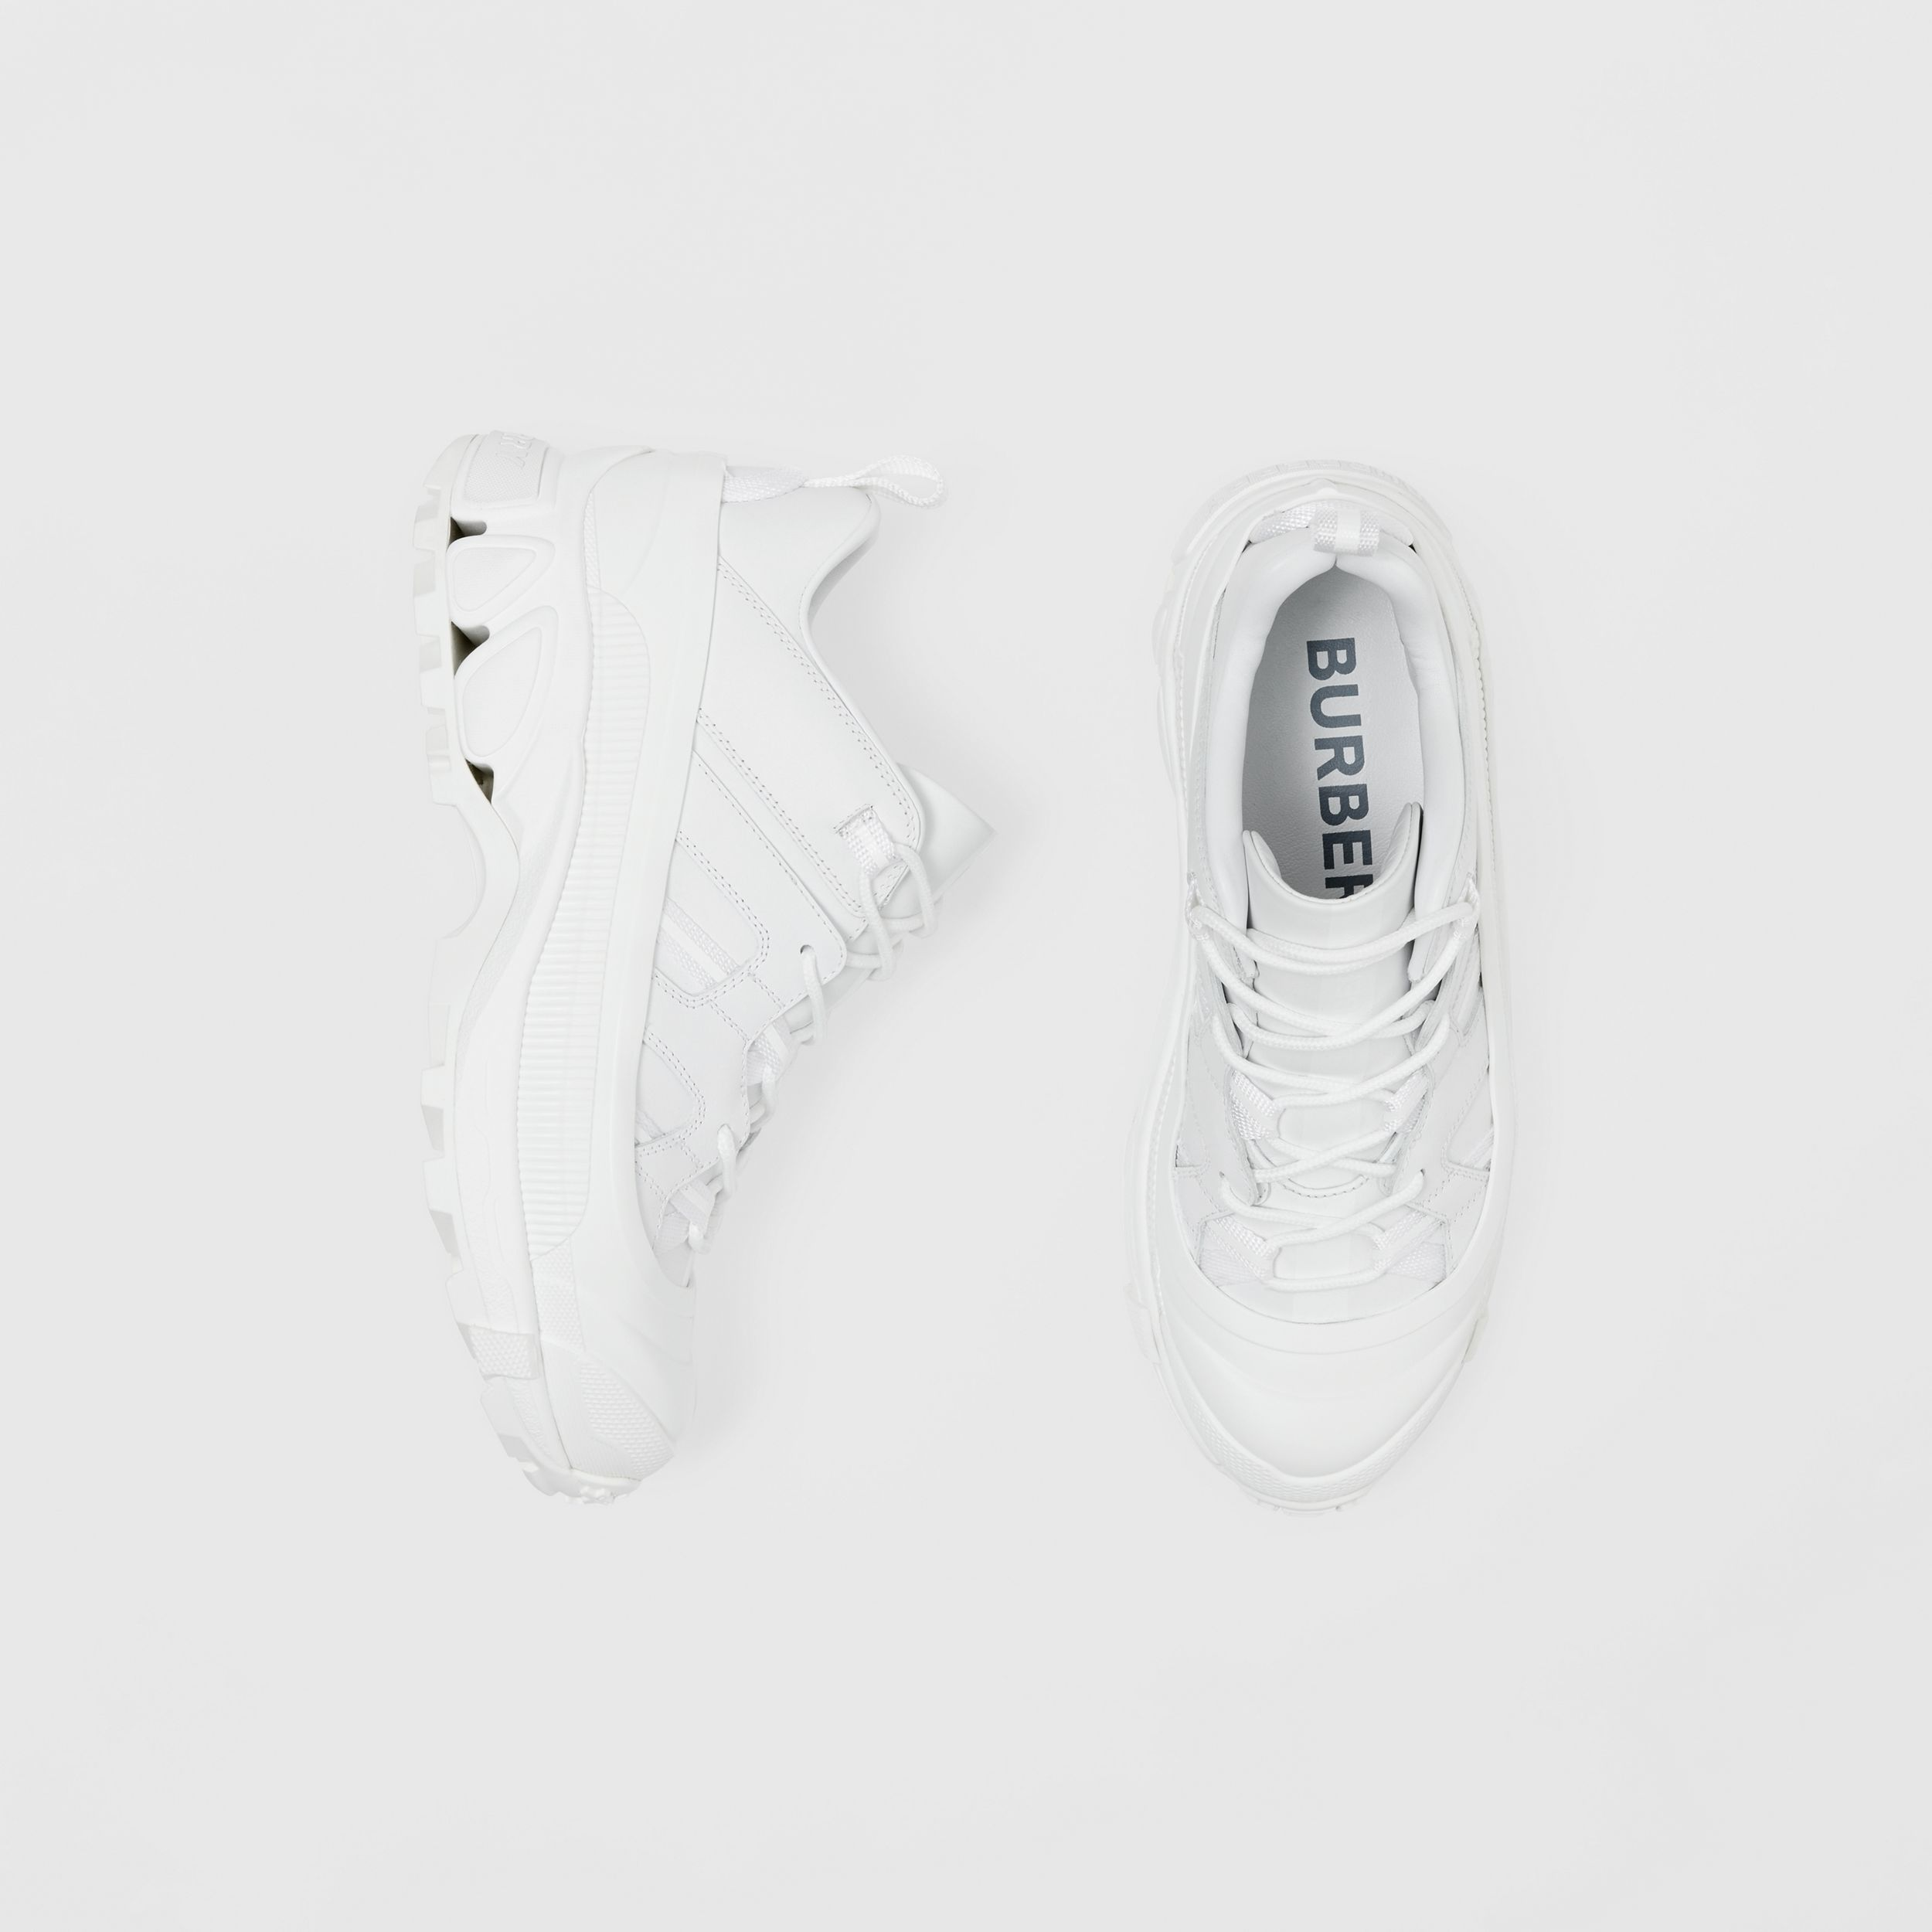 Leather Arthur Sneakers in White - Women | Burberry - 1